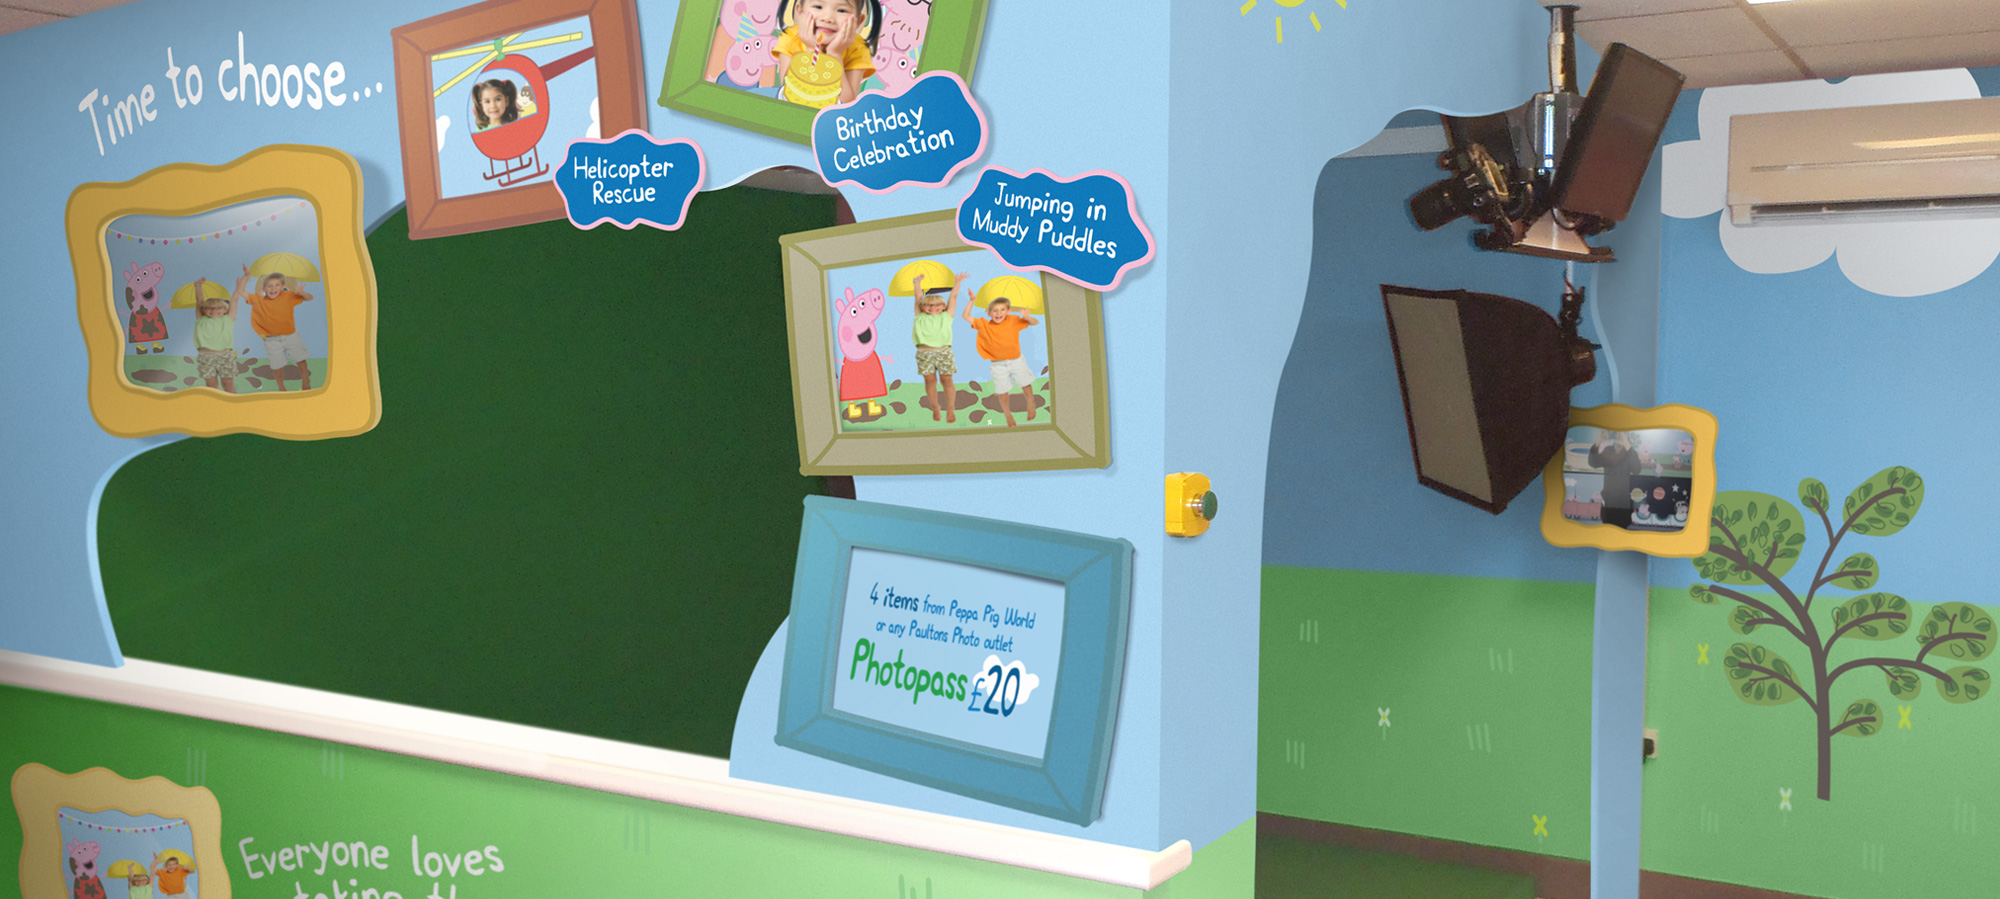 Peppa Pig guest experience at Paulton's Park